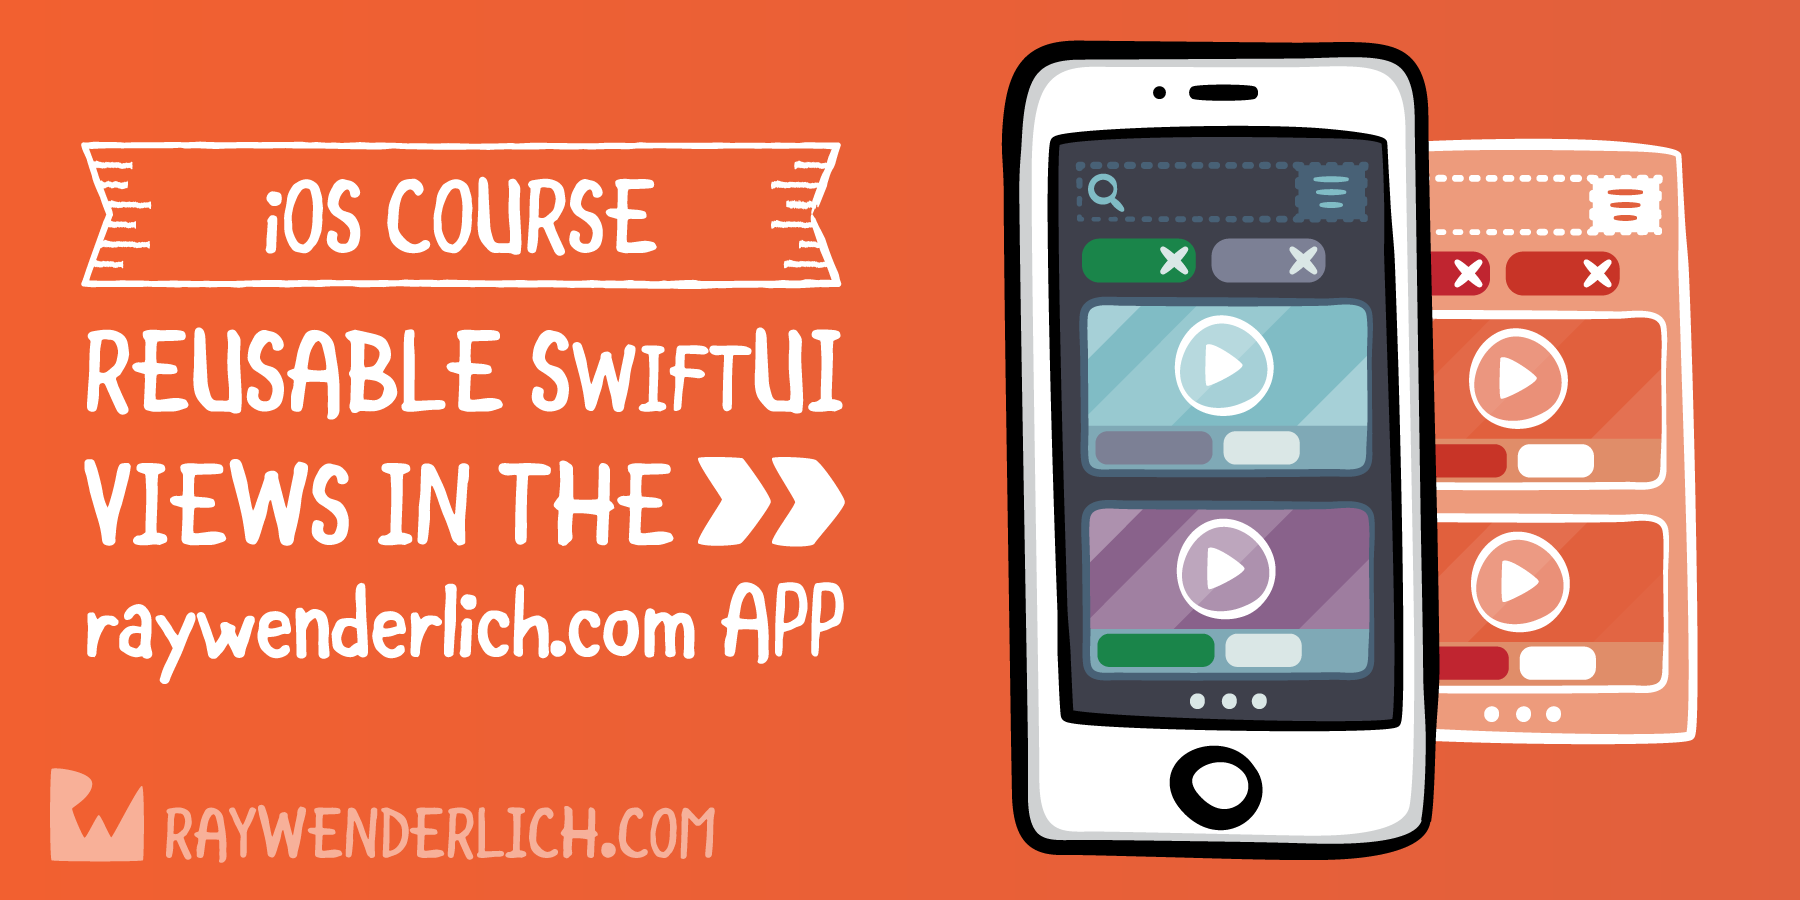 Reusable SwiftUI Views in the raywenderlich.com App [SUBSCRIBER]